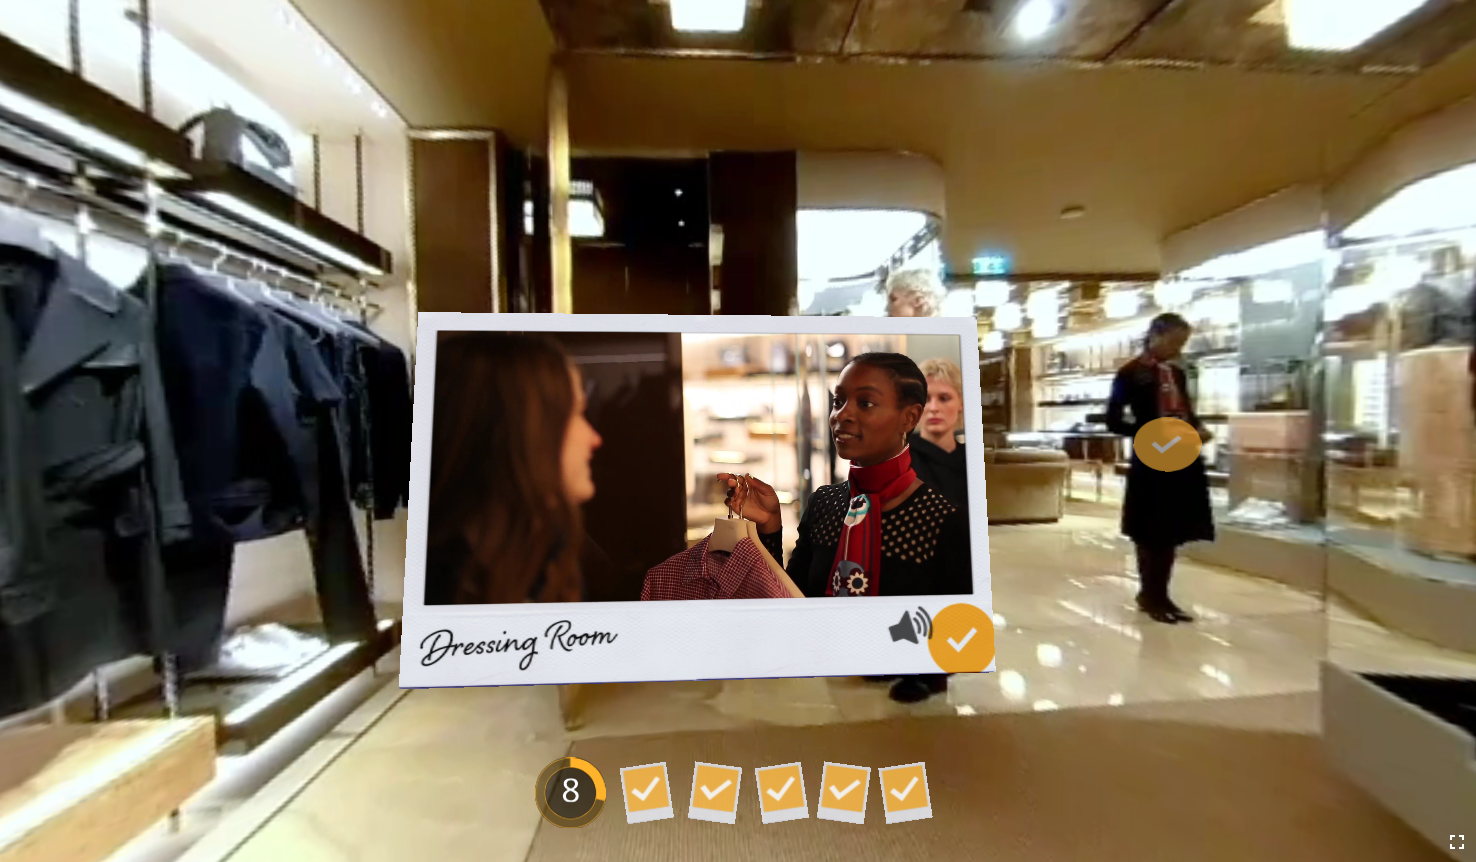 Image from a mobile-friendly, immersive 360 training course created for Fendi. Polaroid-style frame with a video inside it showing a customer leaving clothes in a dressing room.